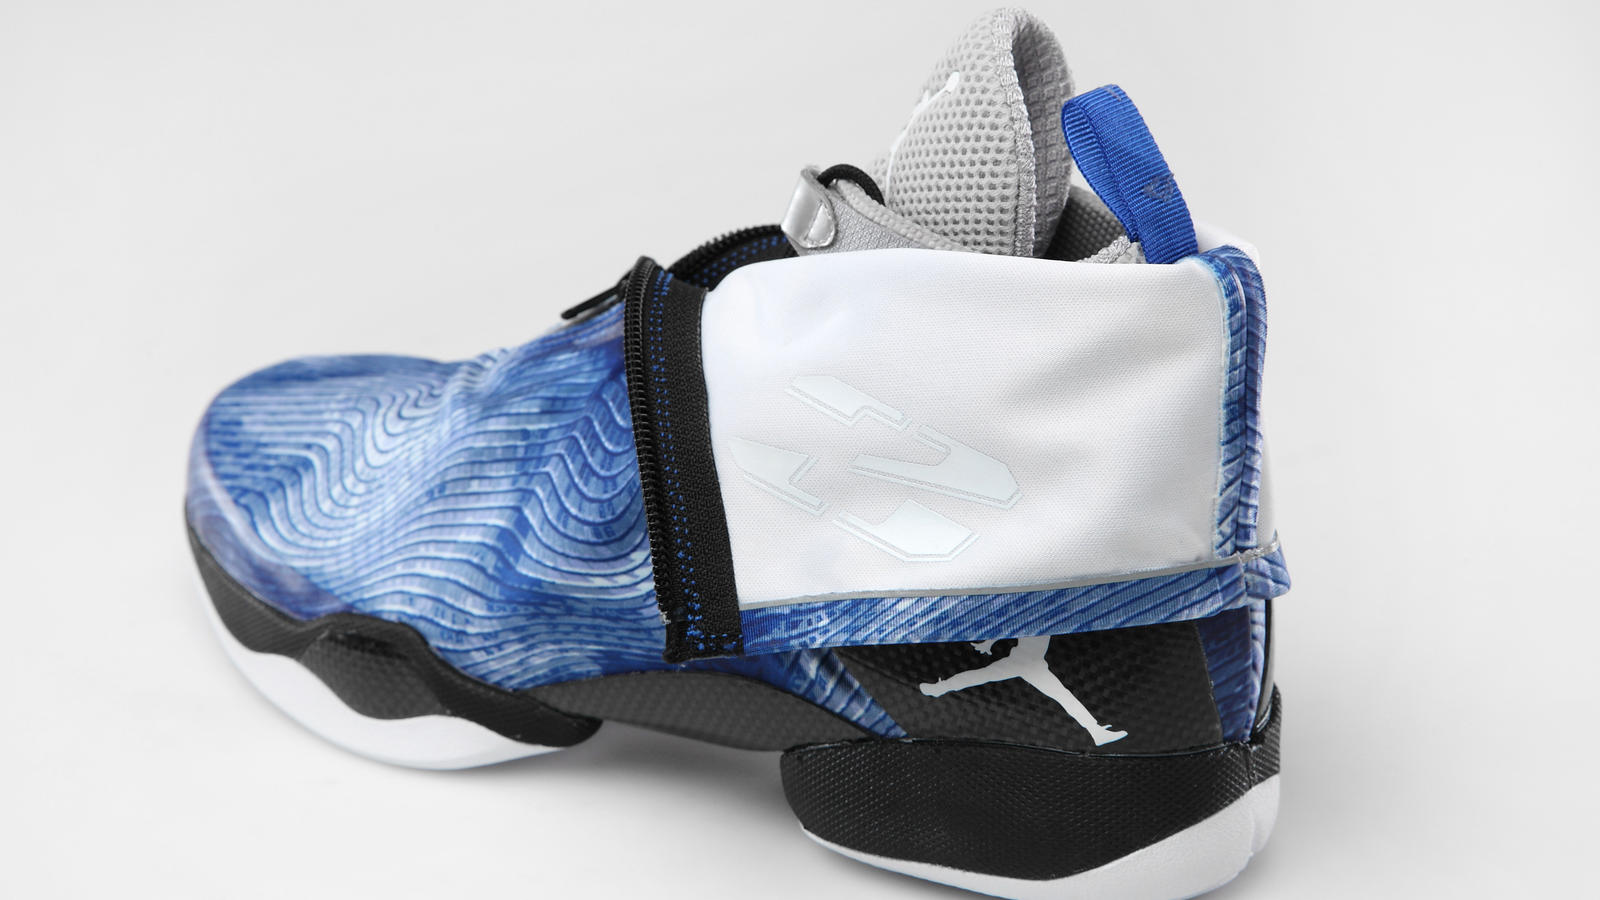 3bf1b34eafed6c RUSSELL WESTBROOK UNVEILS A NEW AIR JORDAN XX8 COLORWAY FOR ...